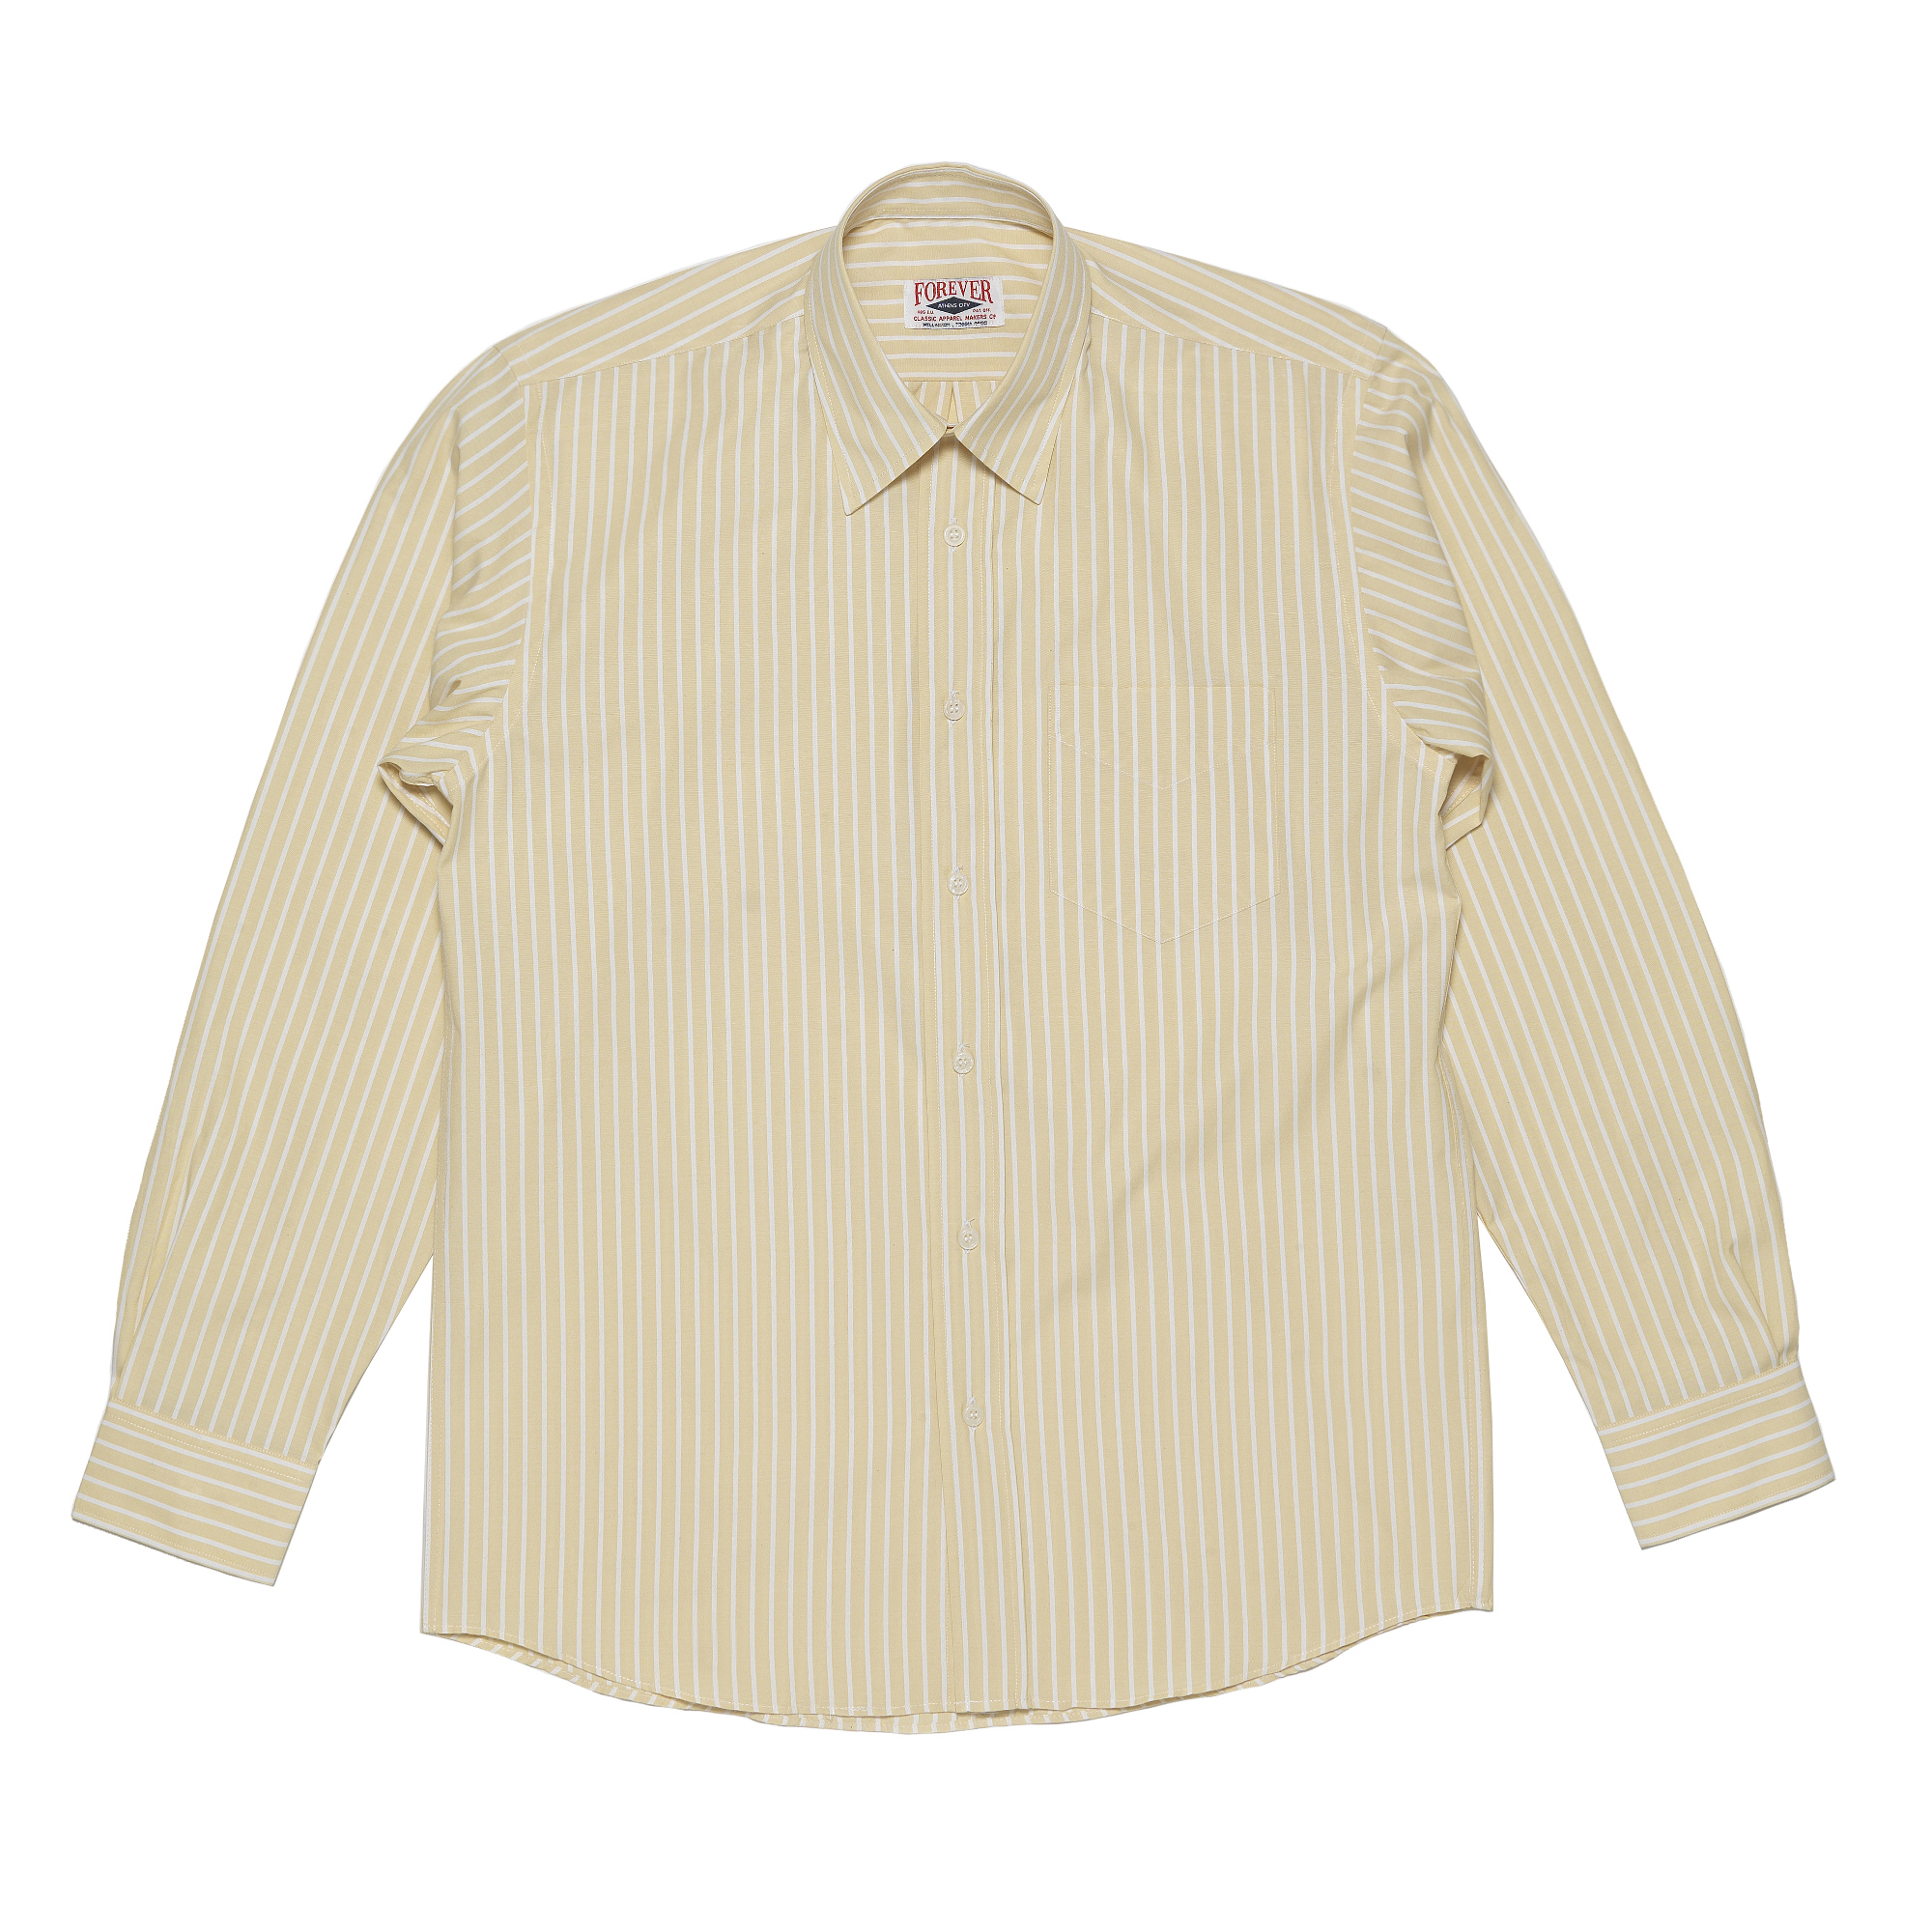 Yellow – white stripes shirt | Forever Classic Apparel Co.